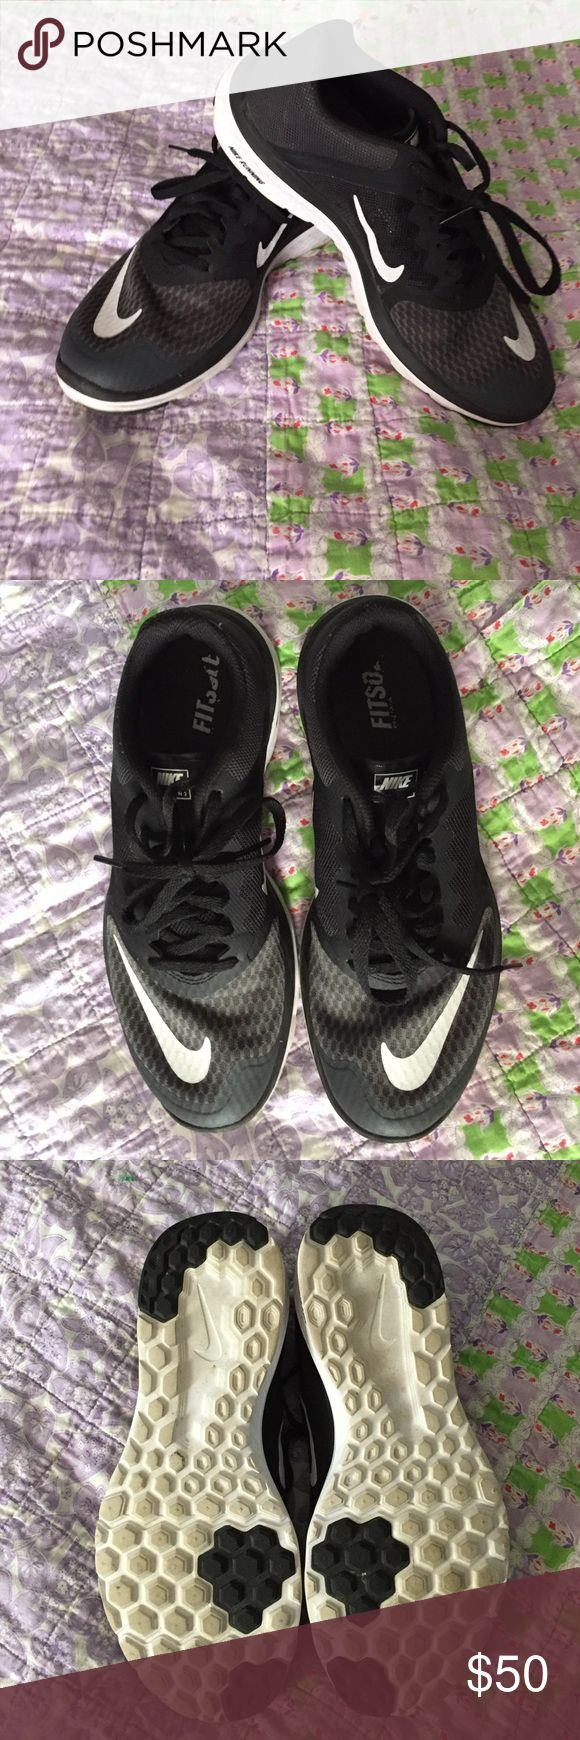 Nike Tennis shoes Black and white Nike lite runs. Worn once. Perfect condition. Comes with a Nike box. Nike Shoes Sneakers